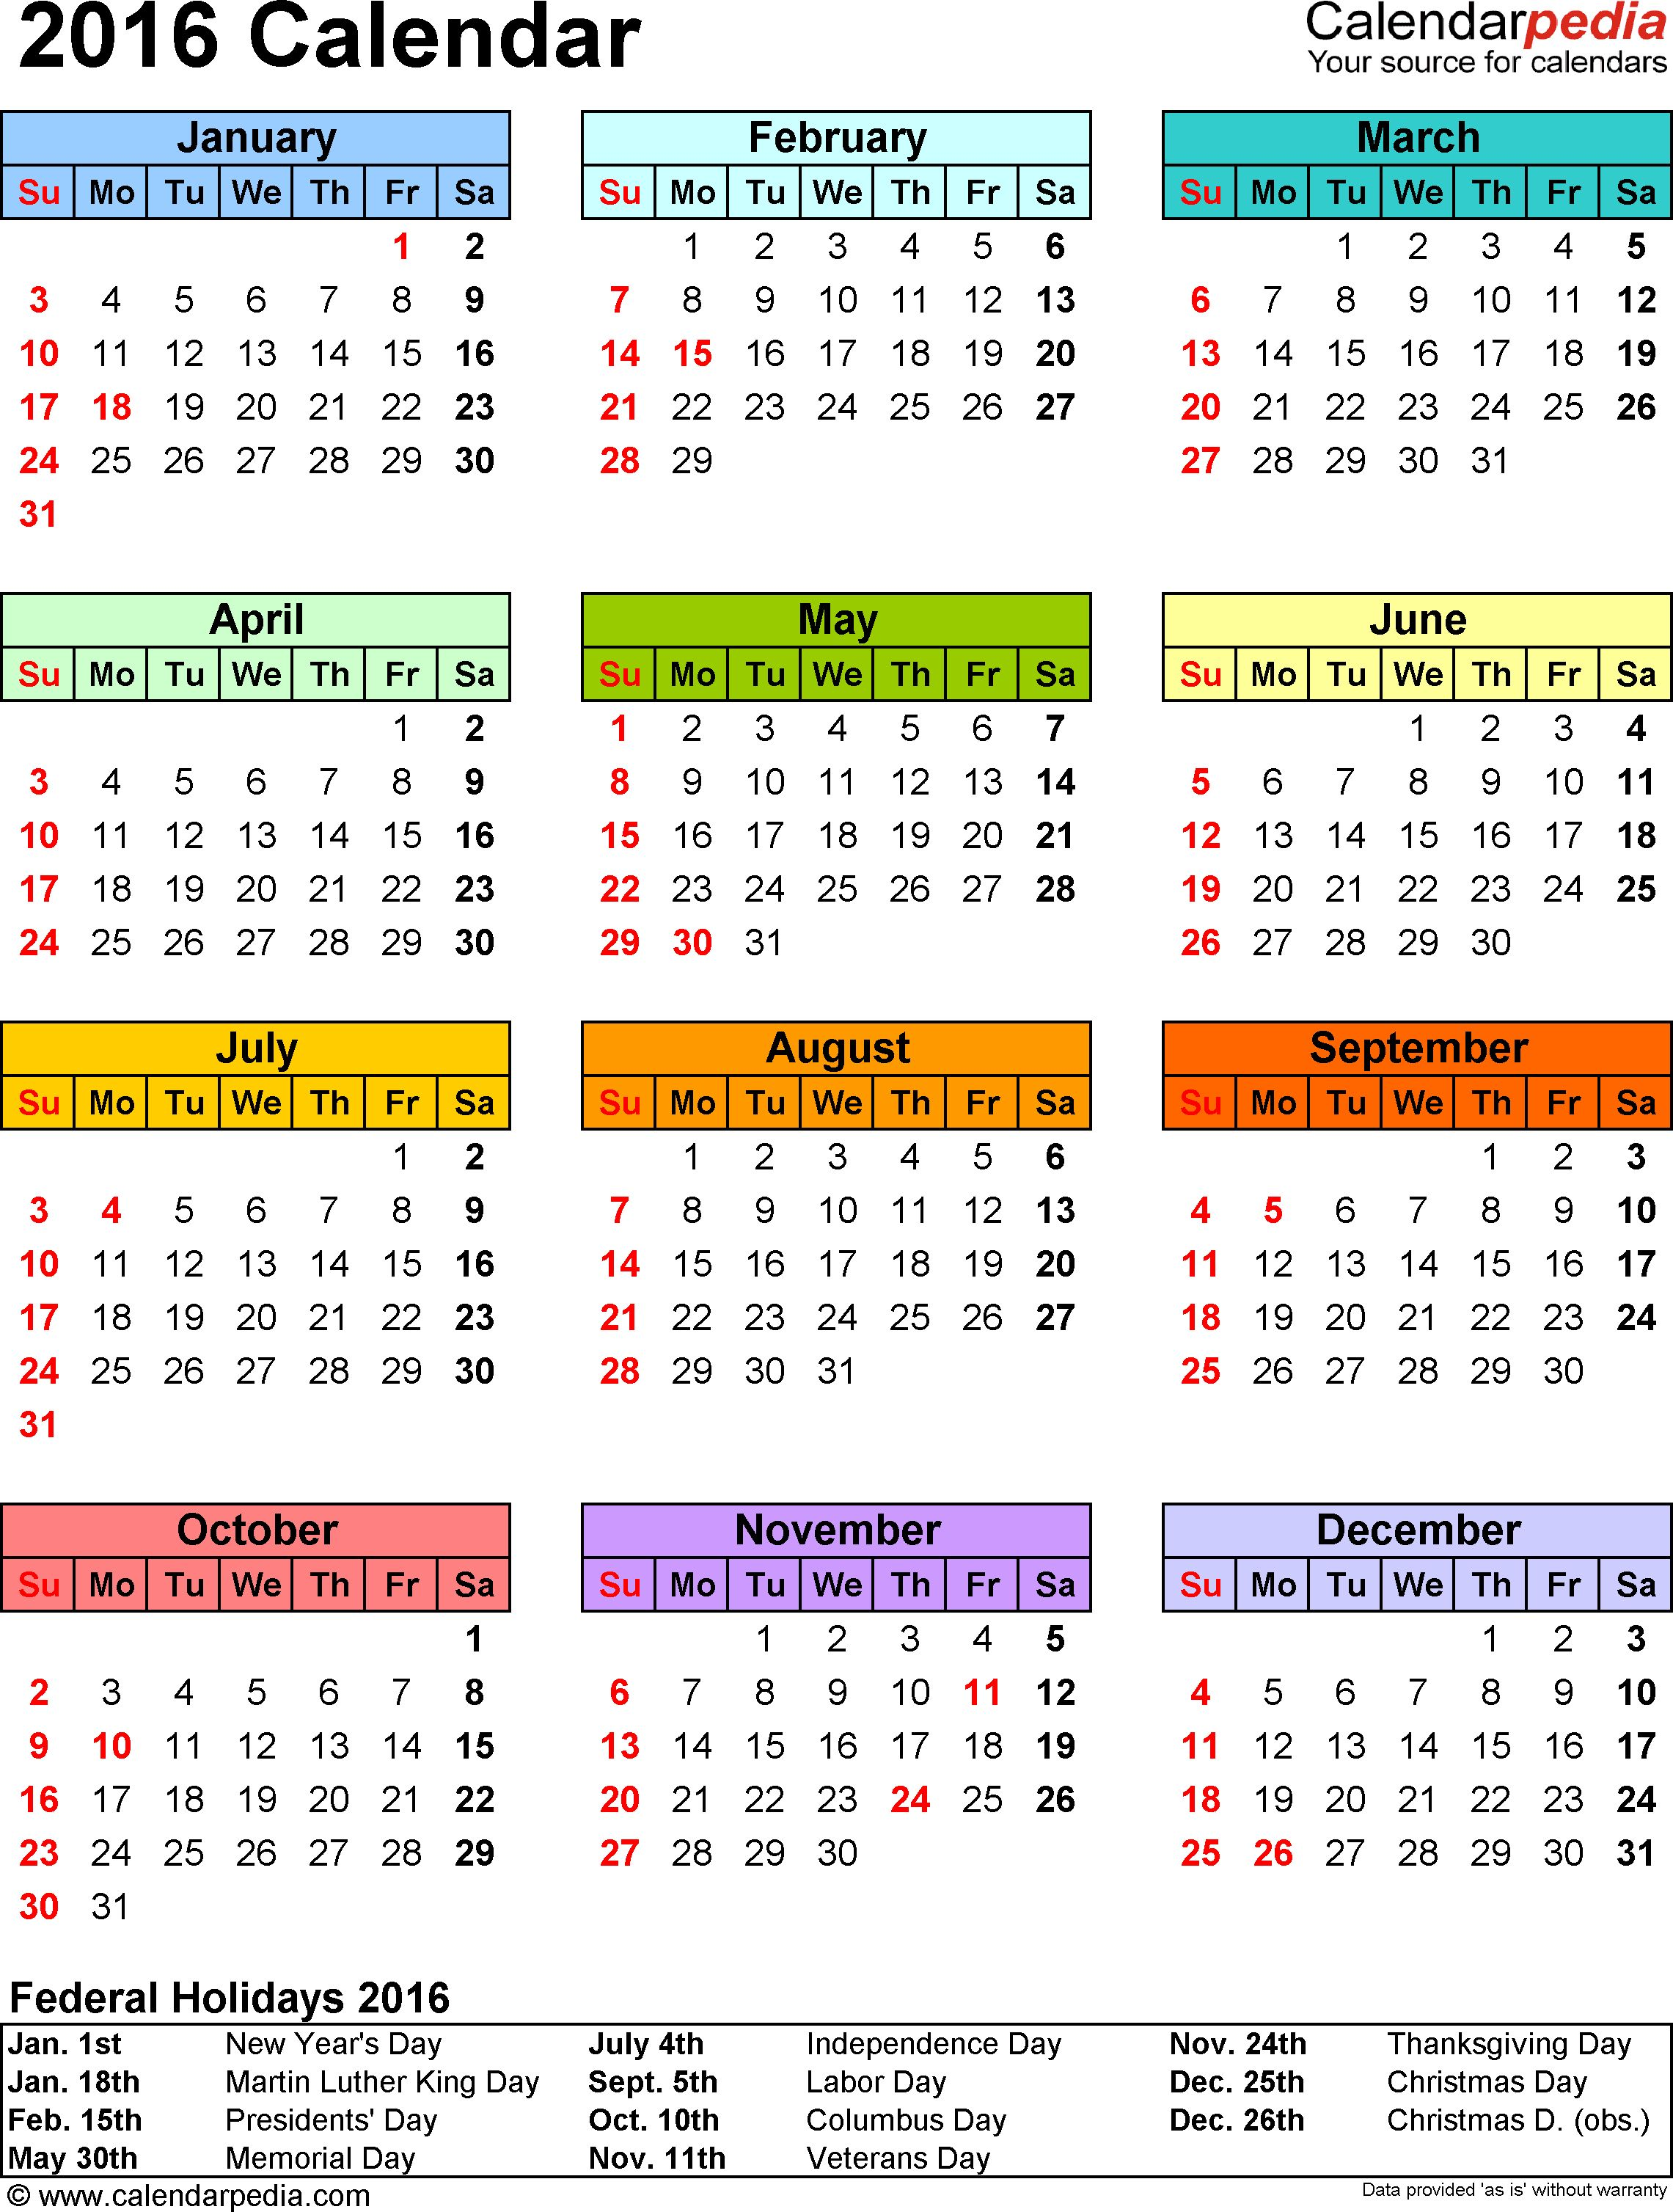 Calendar Templates With Holidays : Calendar with federal holidays excel pdf word templates